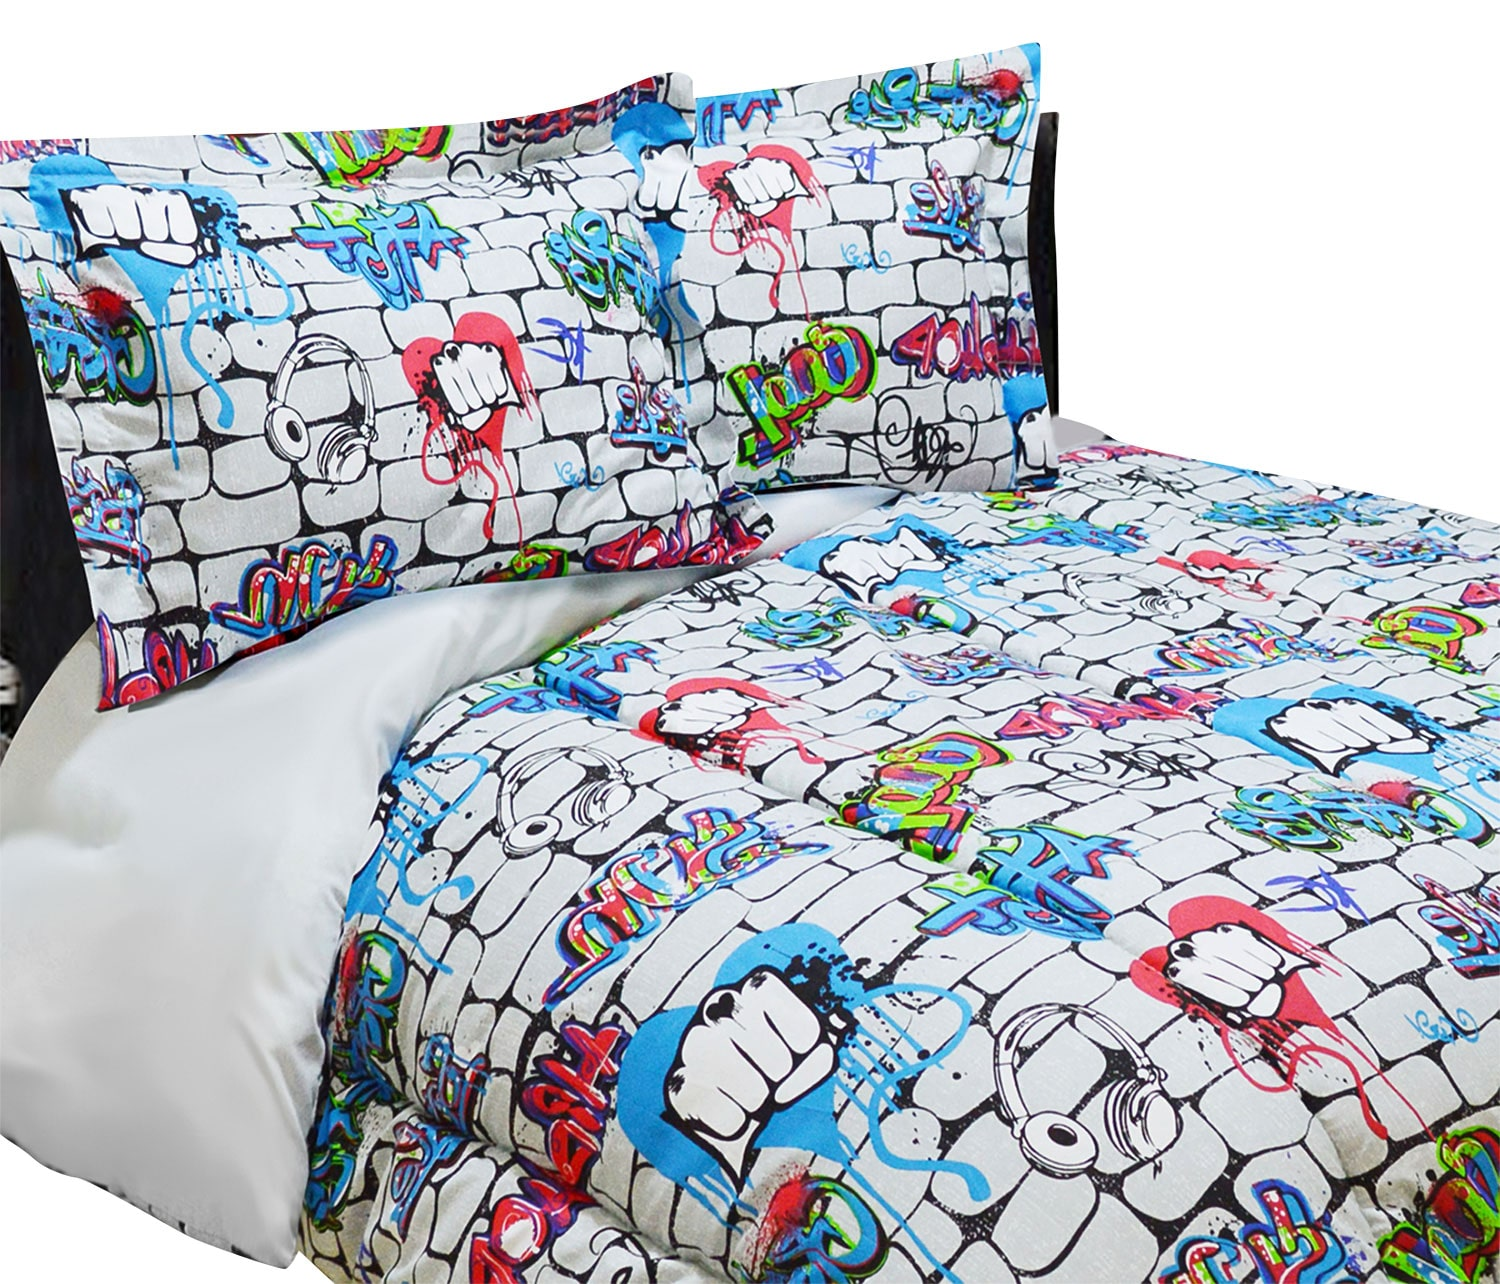 Mattresses and Bedding - Graffiti Wall 3-Piece Full Comforter Set